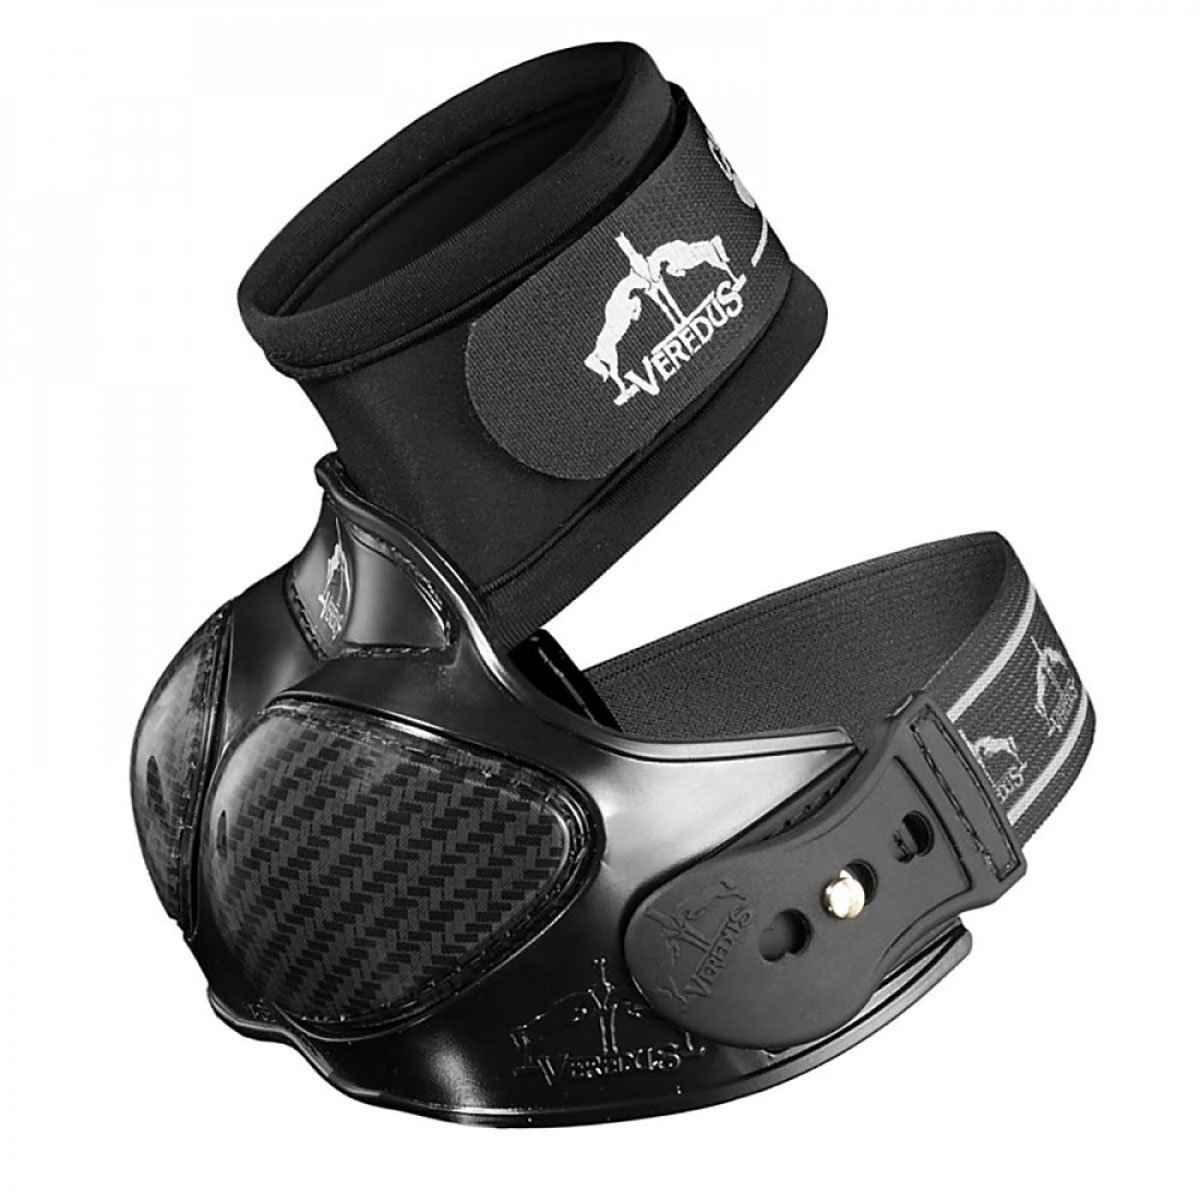 Veredus - Carbon Heel Shield - Horse Boots - Made in Italy - Black